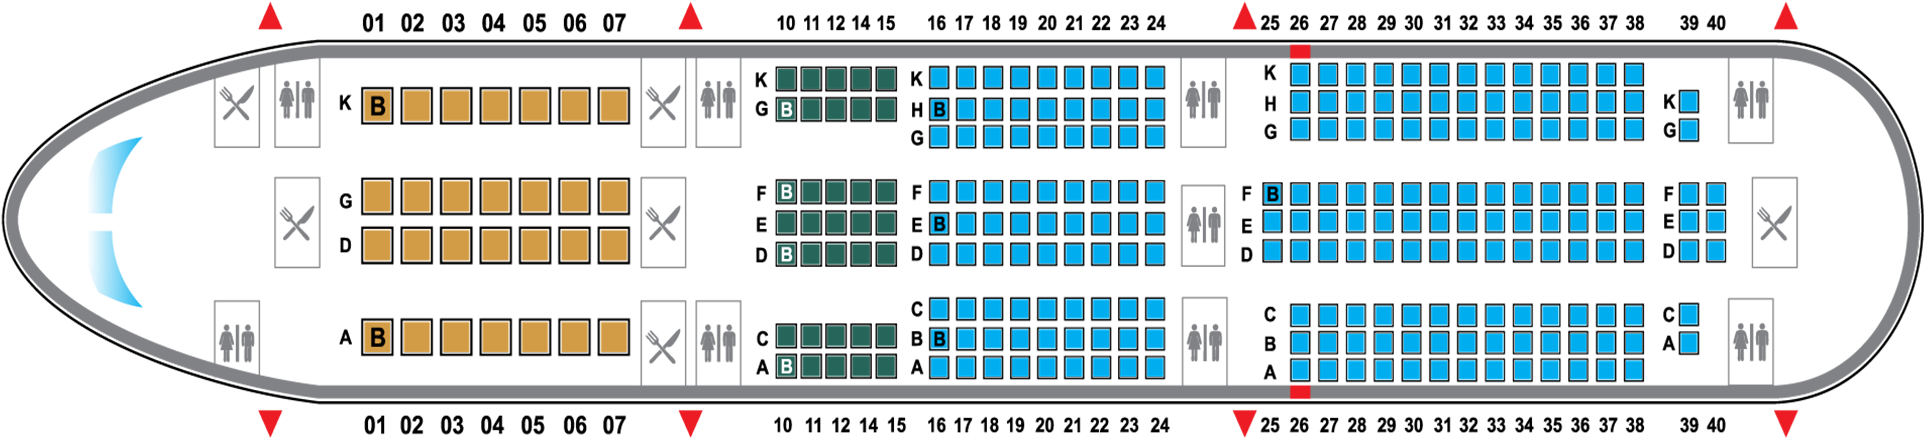 Seating Guide